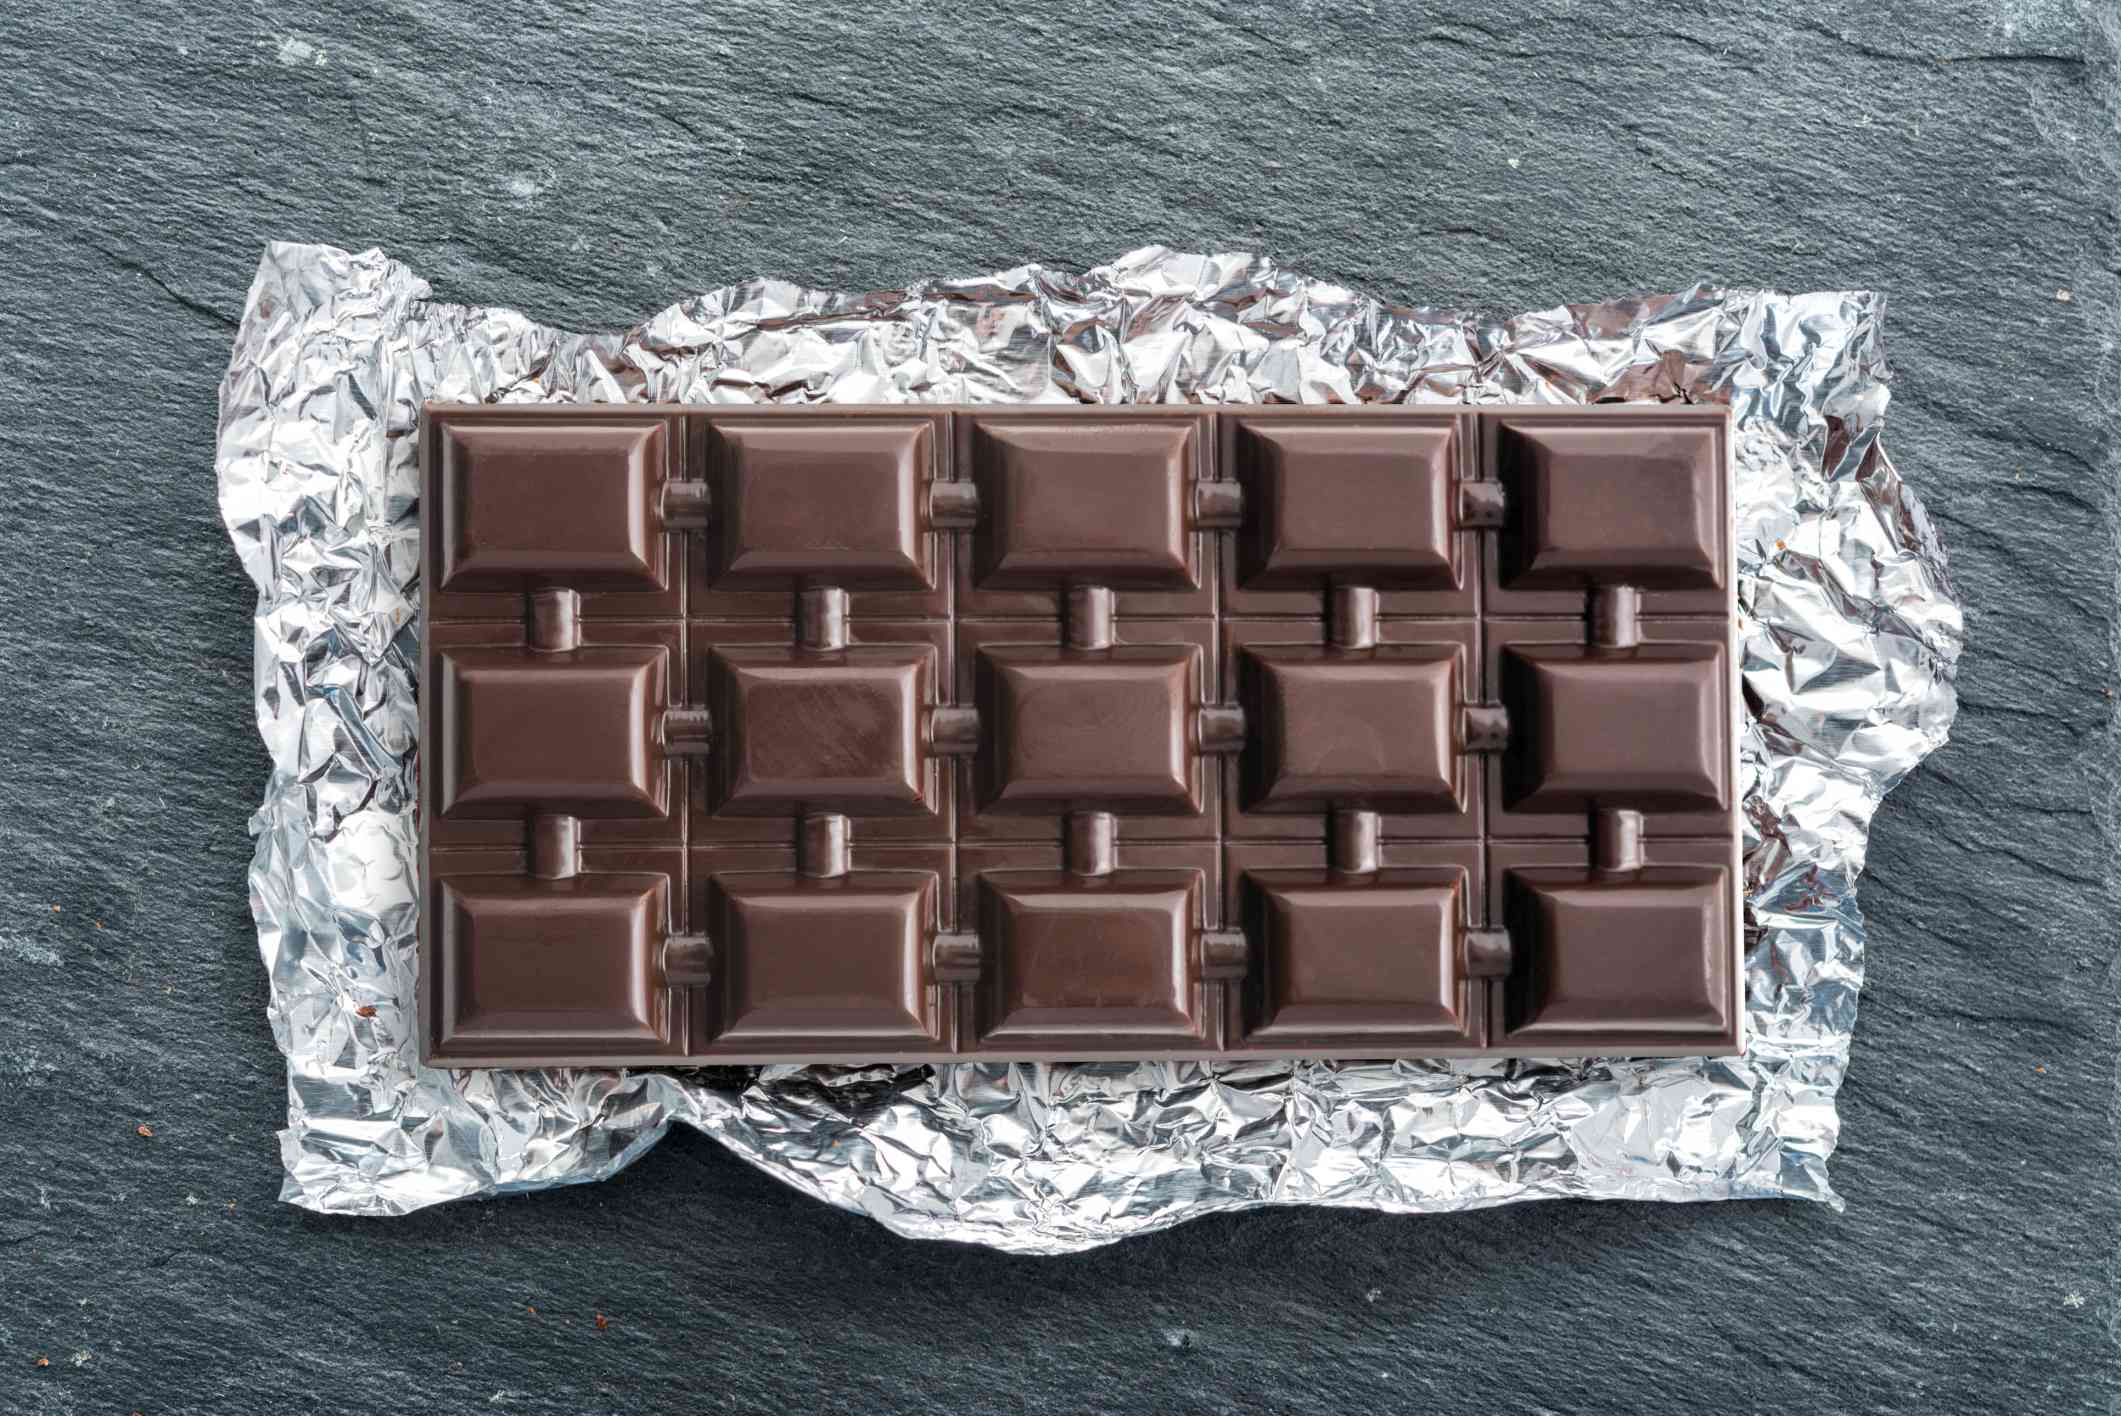 Bar of chocolate in the wrapper on a stone counter